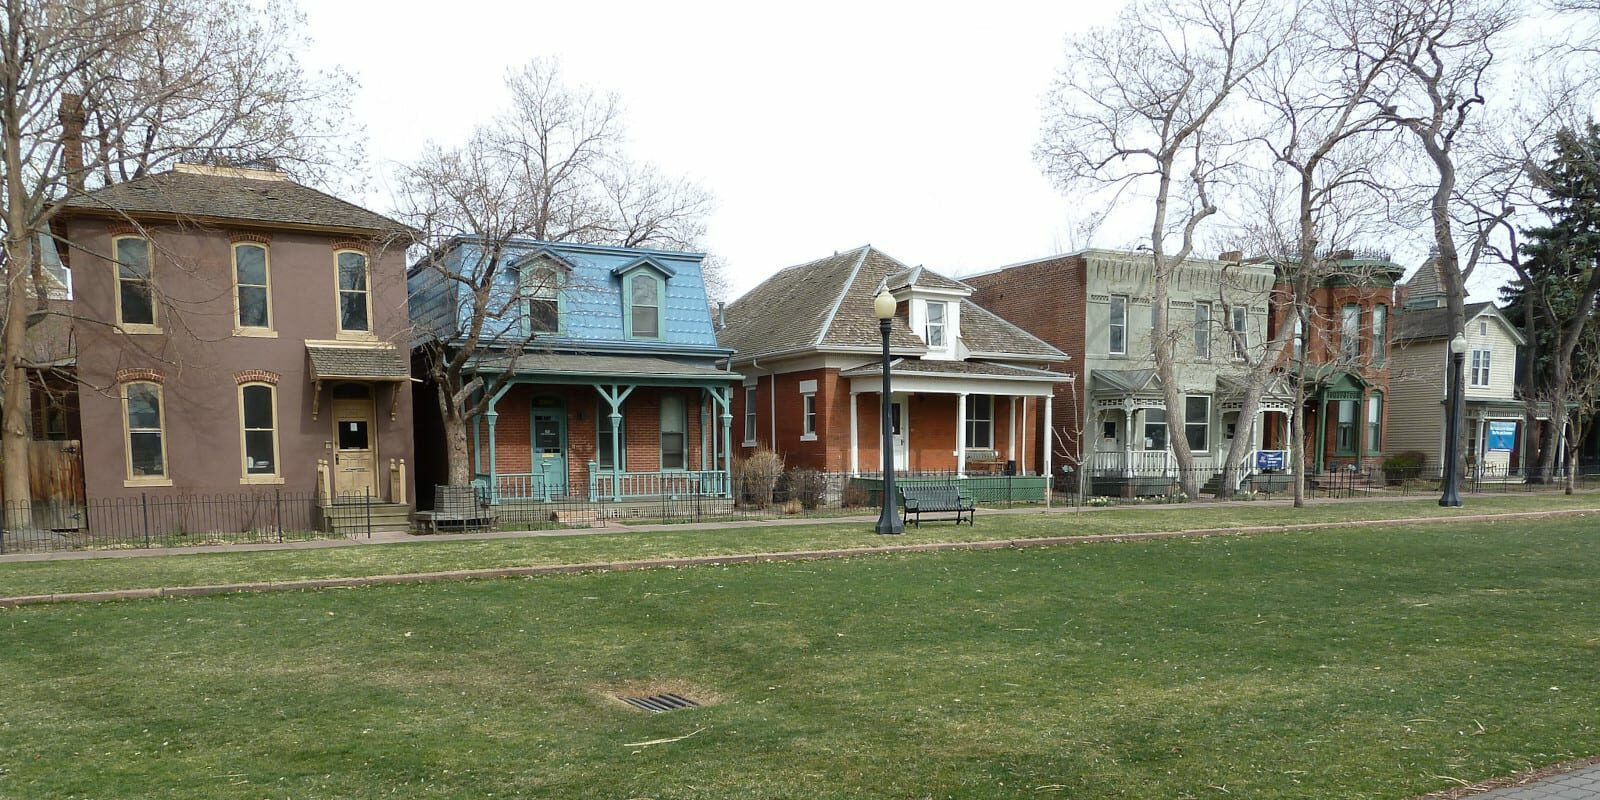 Image of the houses within the ninth street historic park in denver, colorado